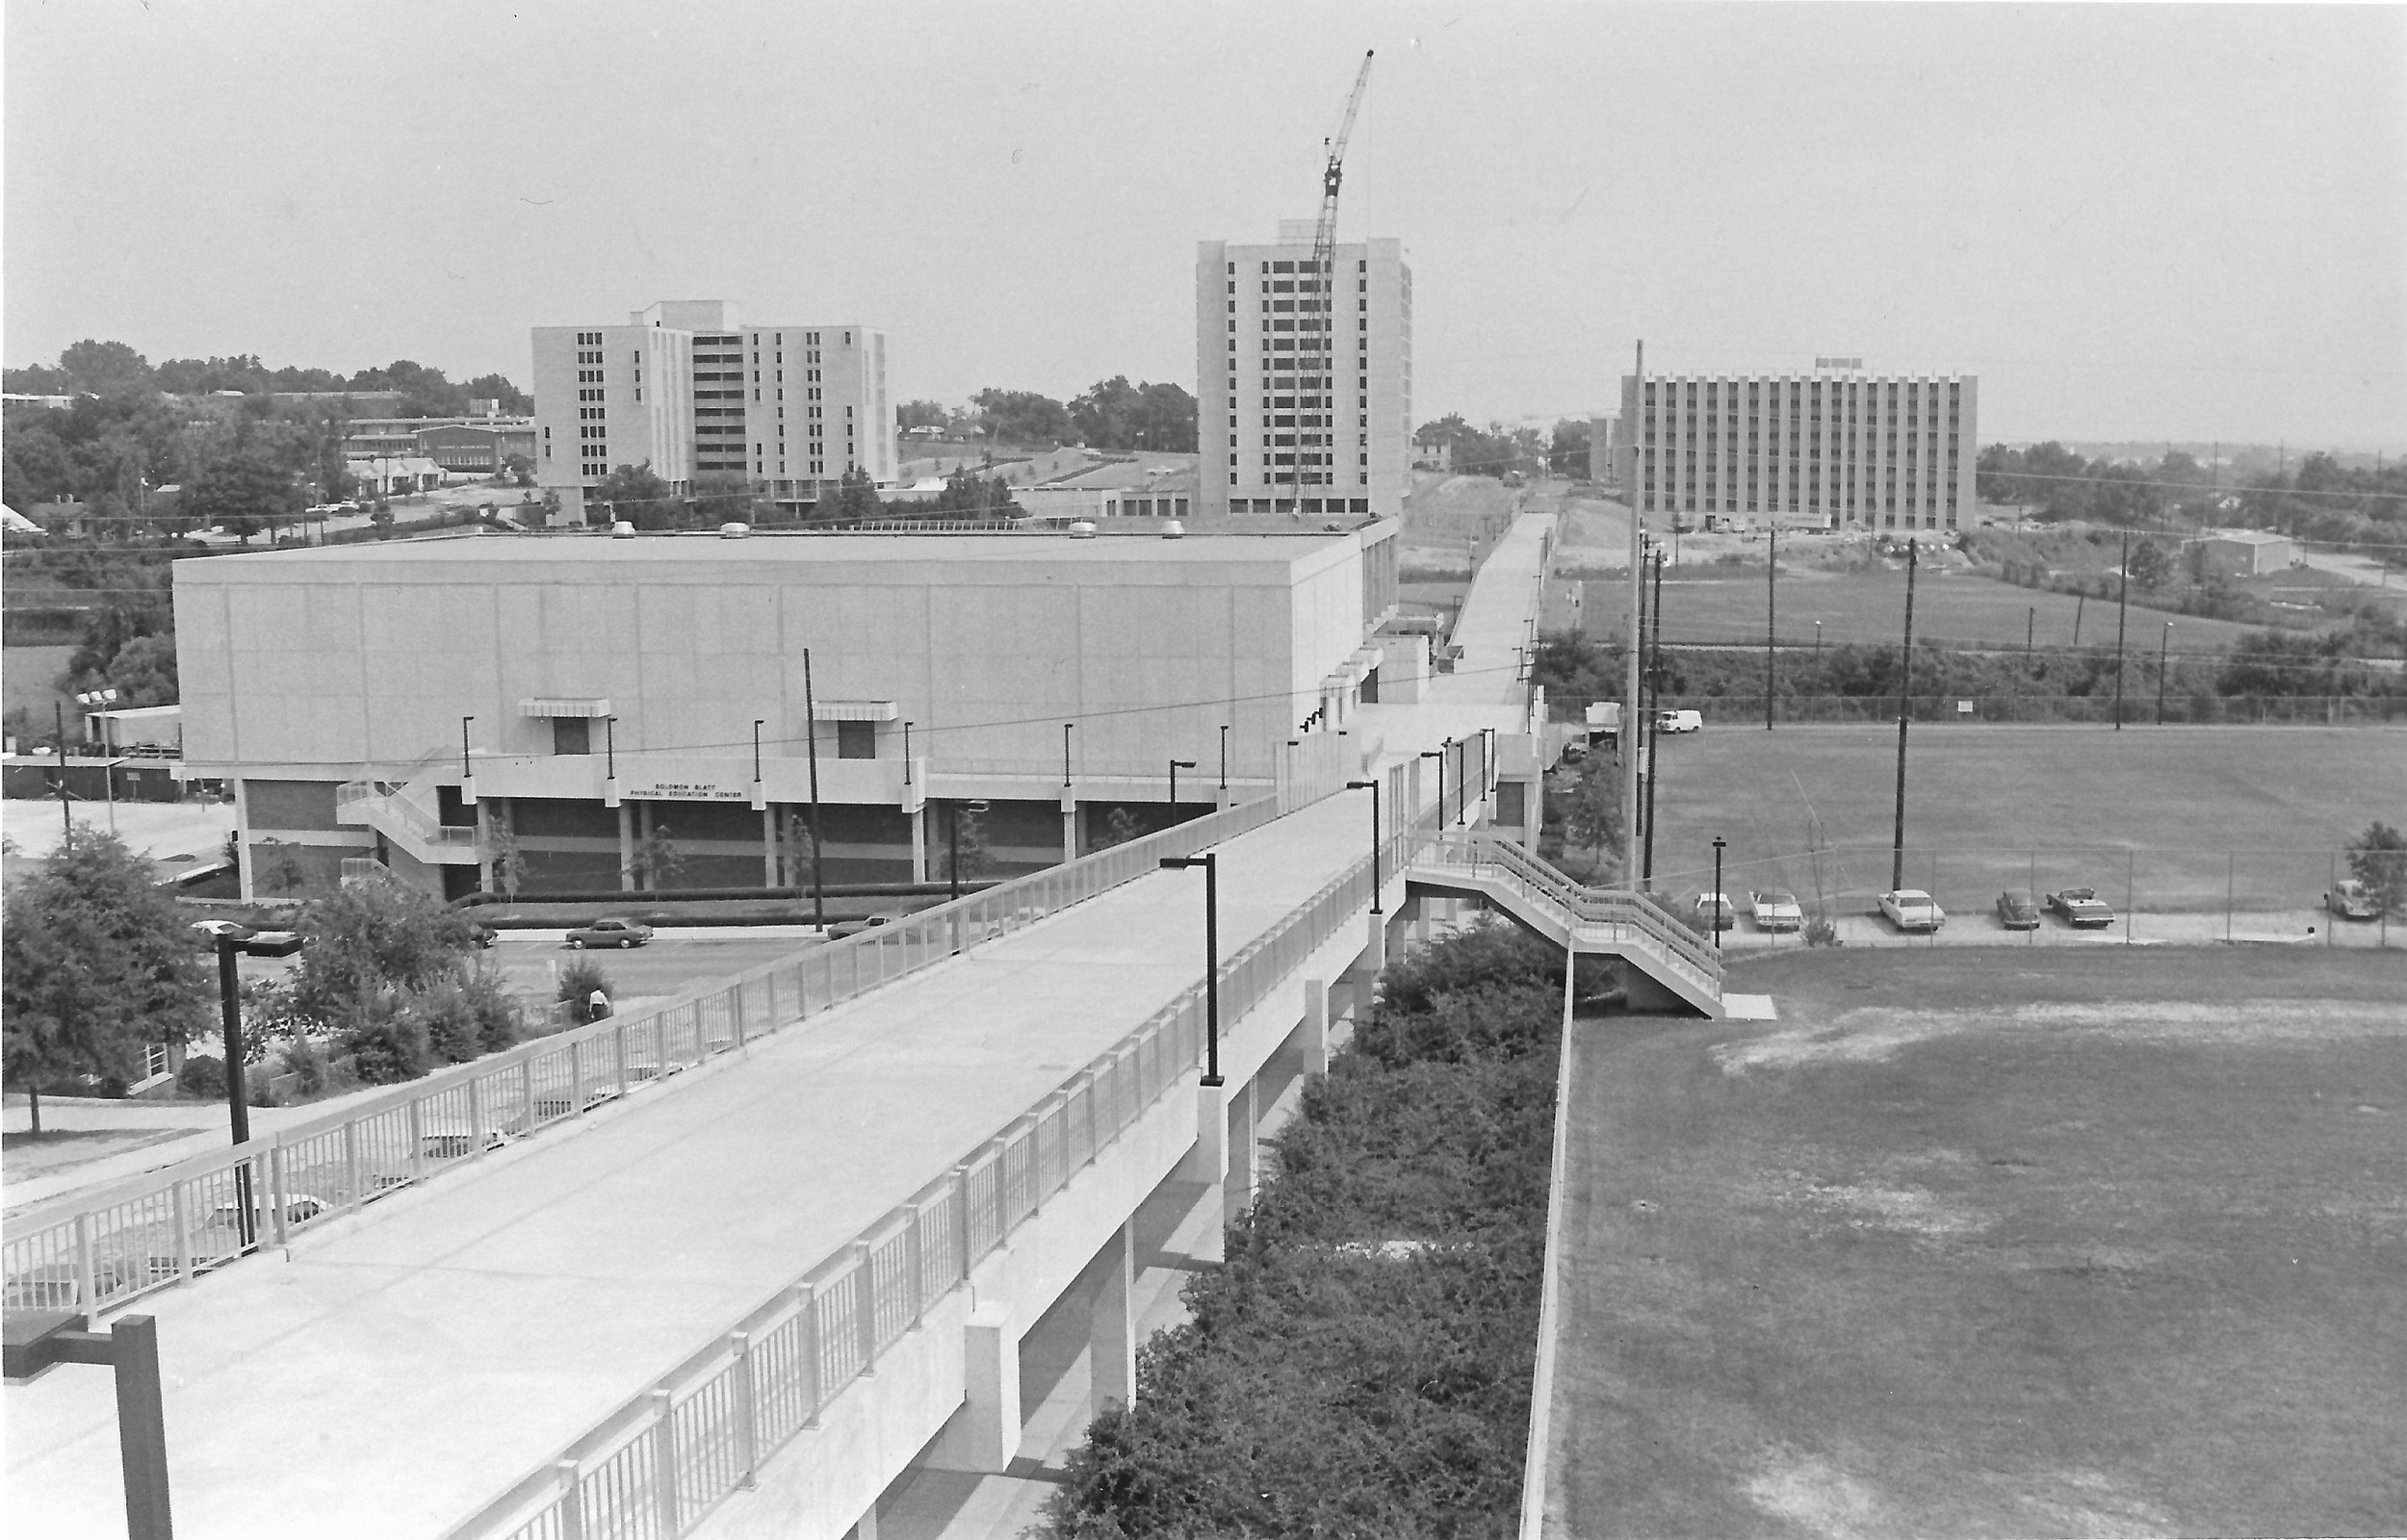 The south side of the University of South Carolina's campus under construction in the early 1970s.